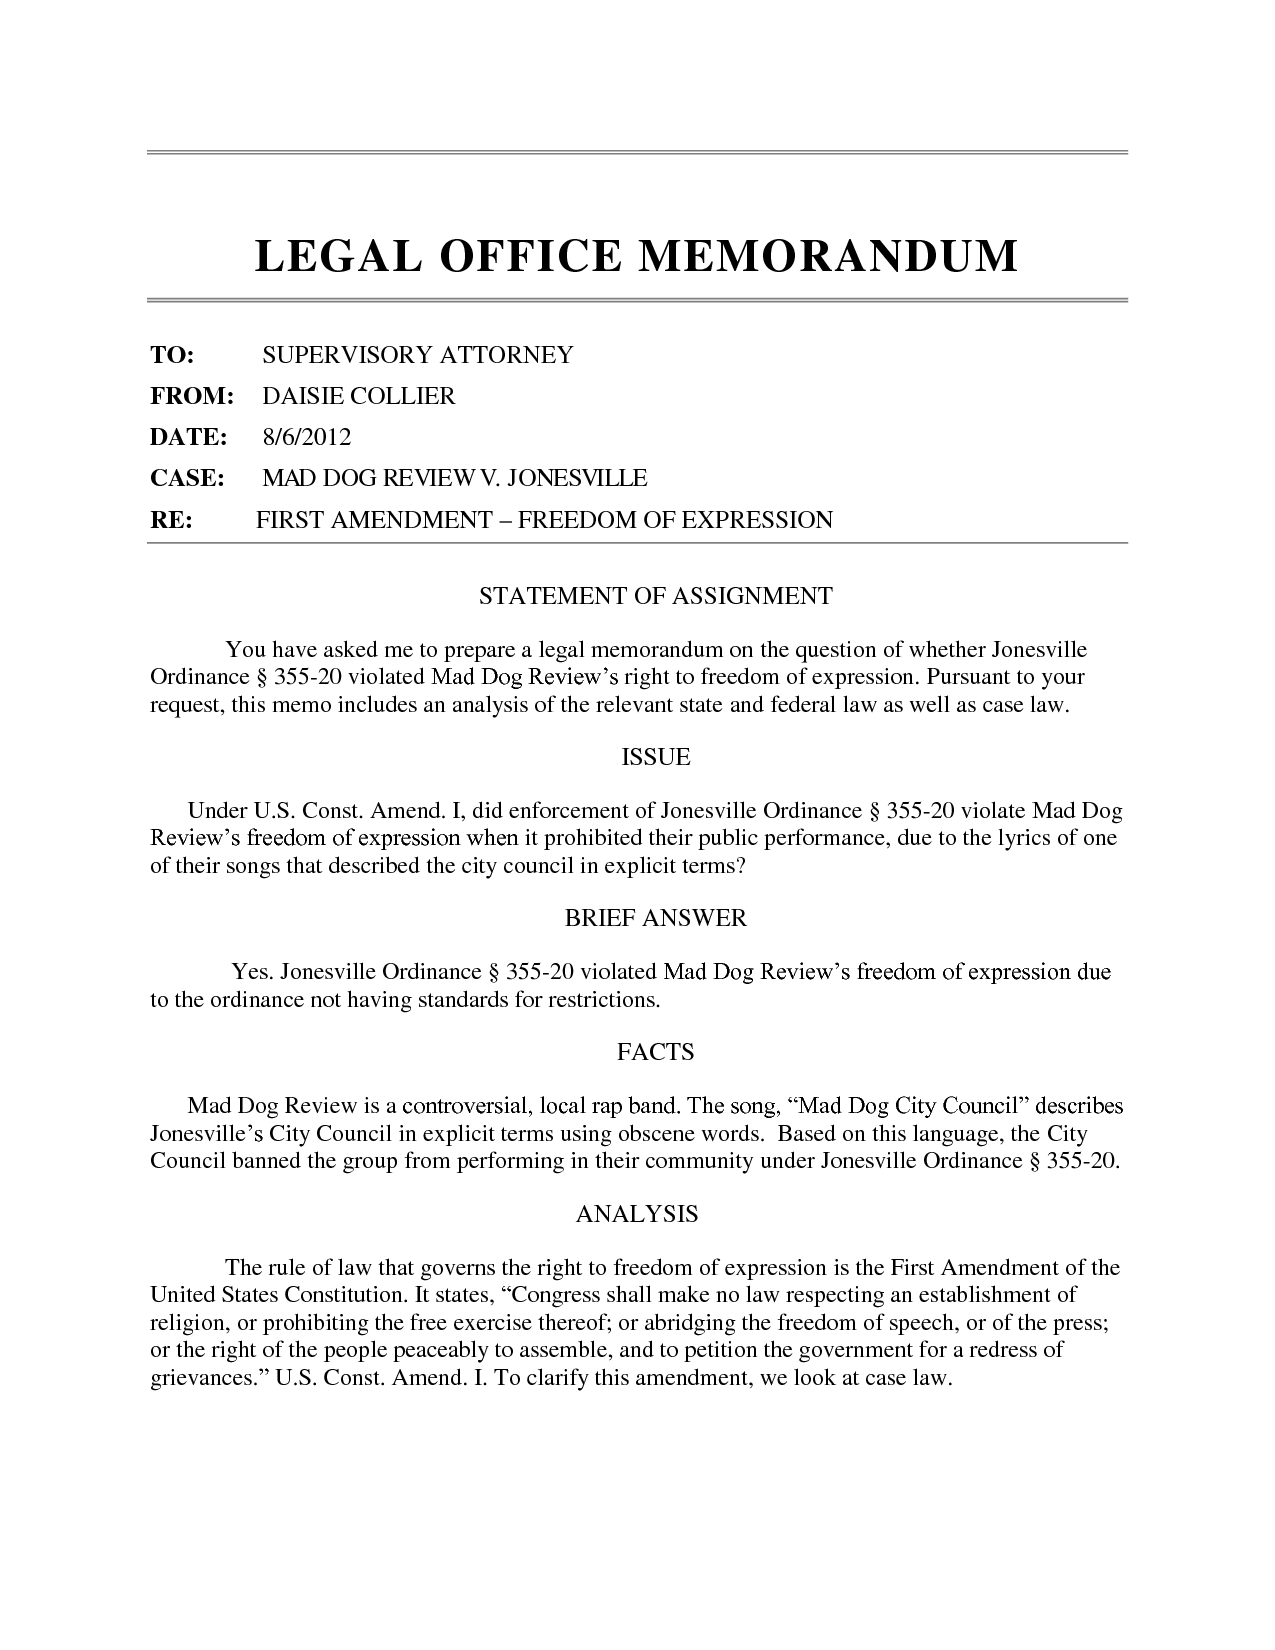 Best Photos Of Law Memo Template - Legal Office Memo Template in Law Memorandum Format 23176